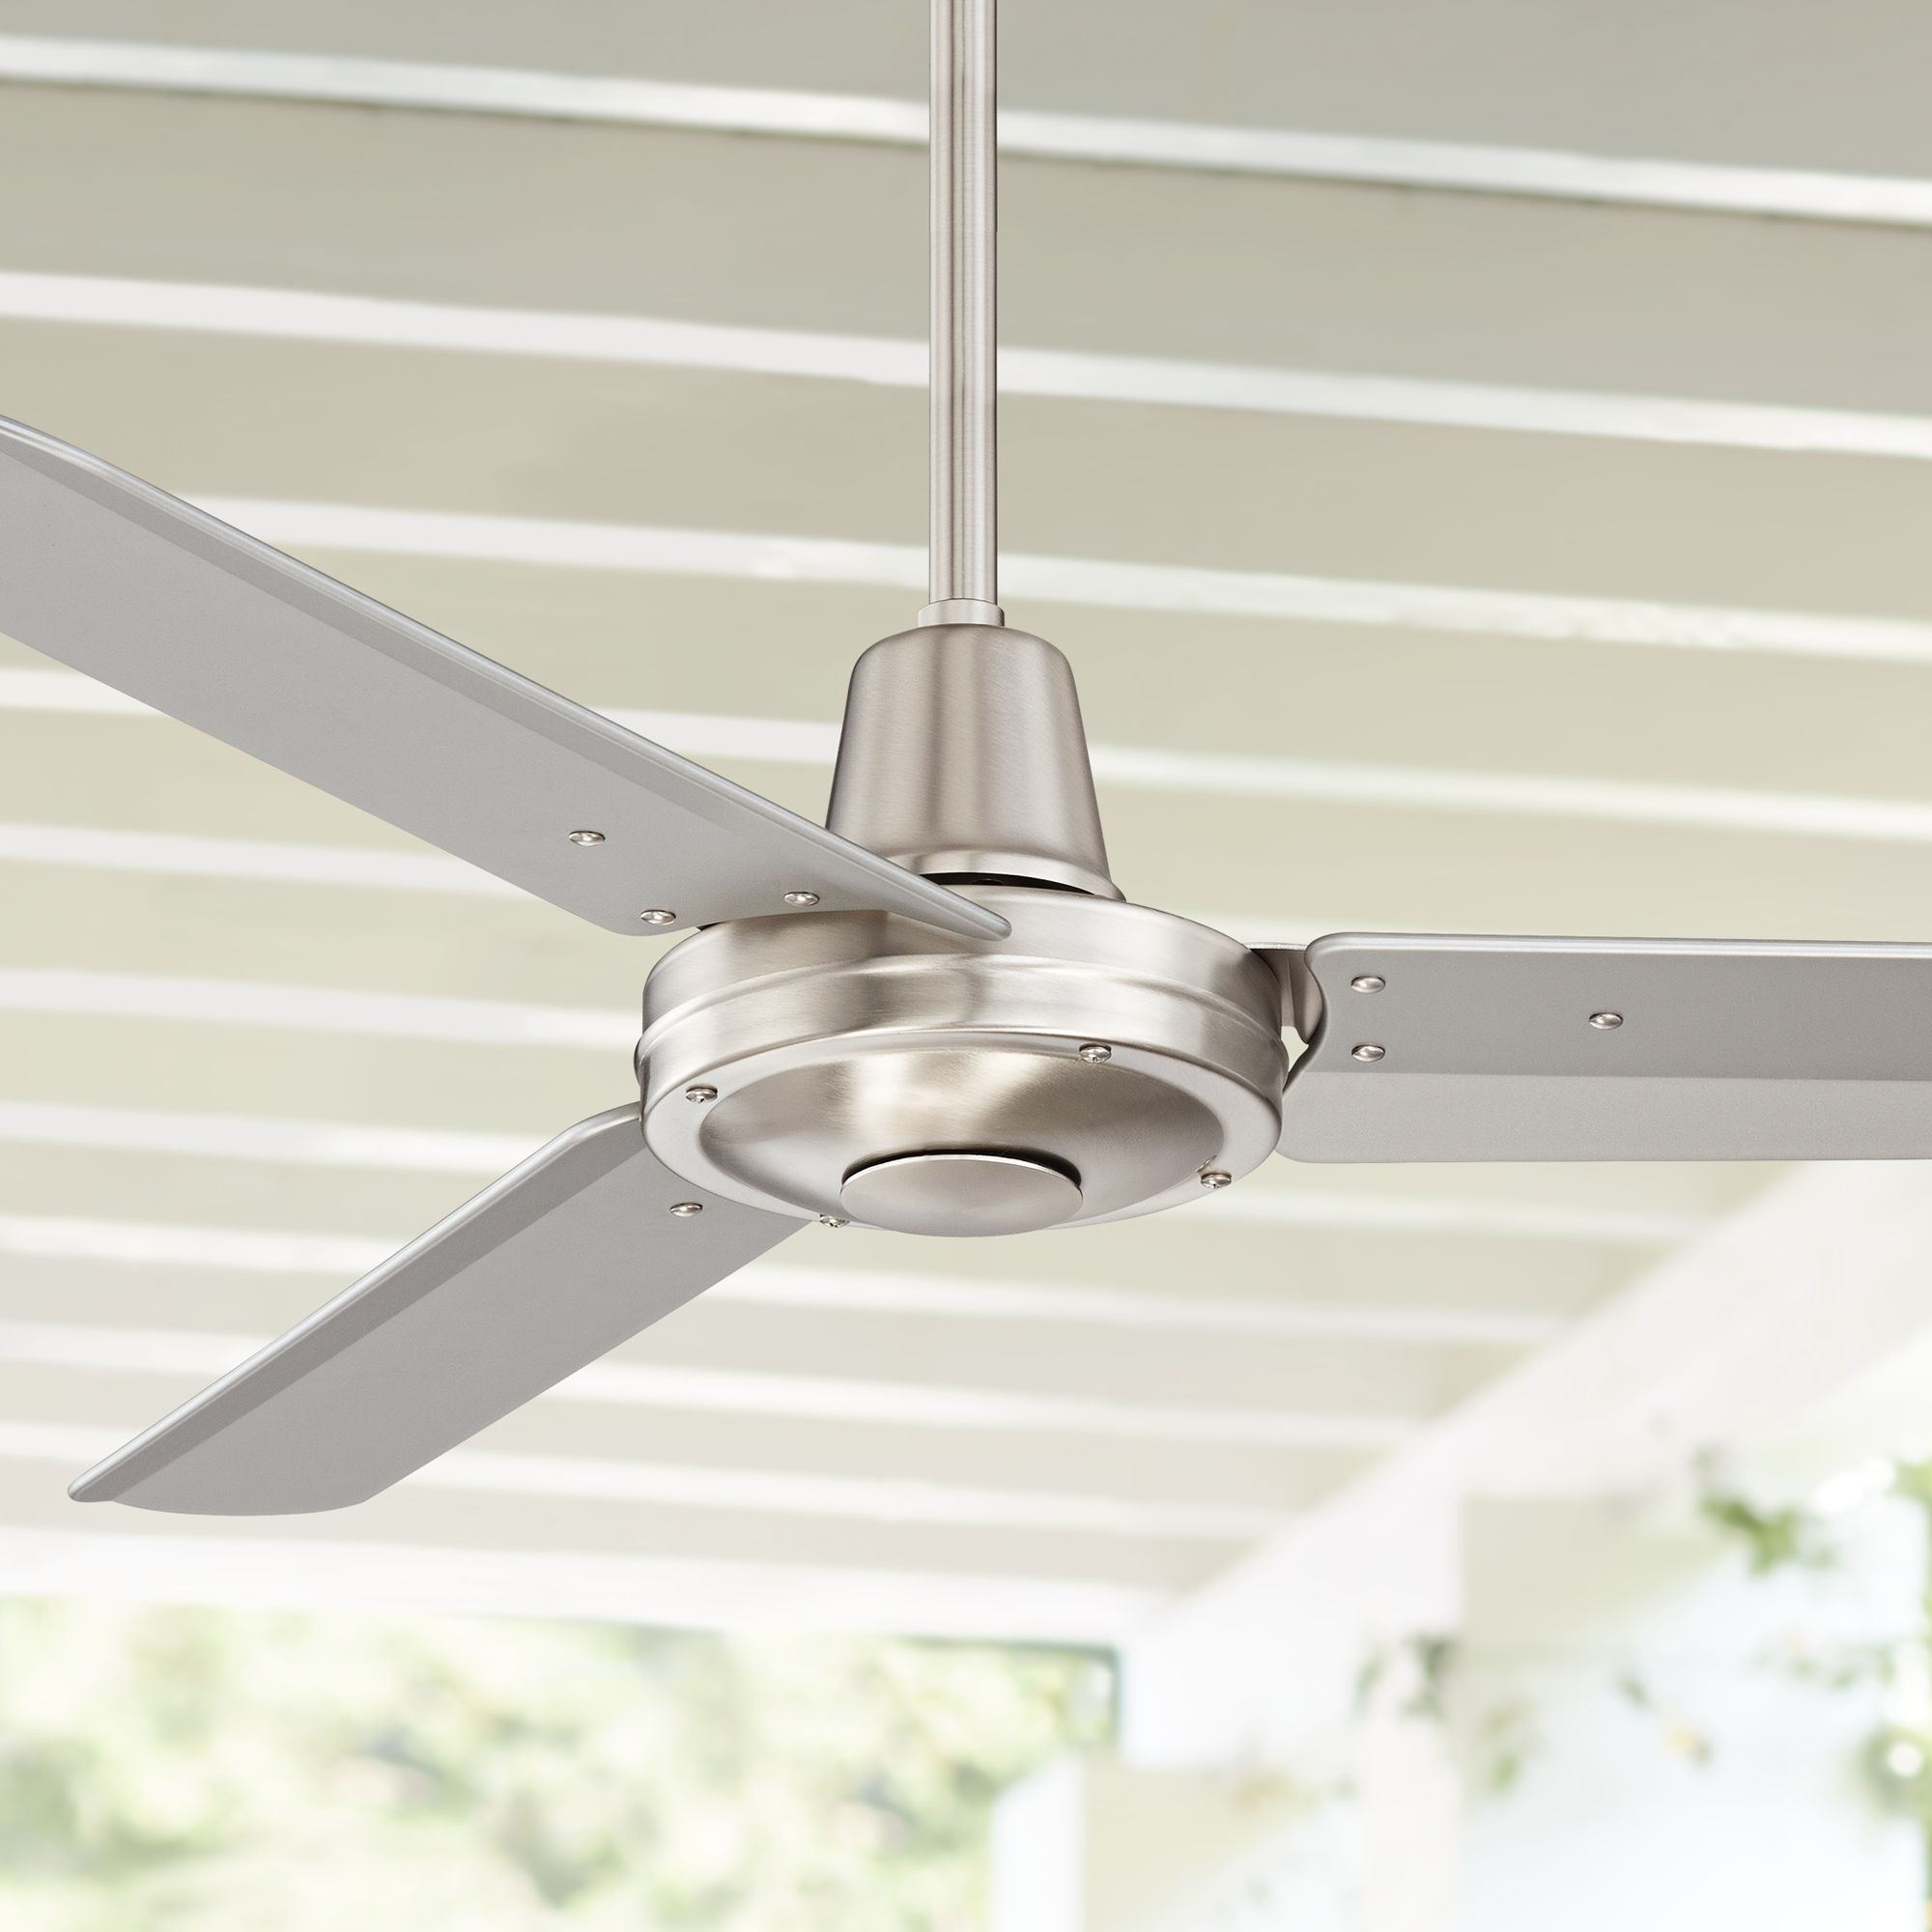 "44"" Casa Vieja Modern Industrial Outdoor Ceiling Fan with Remote Control Brushed Nickel Damp Rated for Patio Porch"